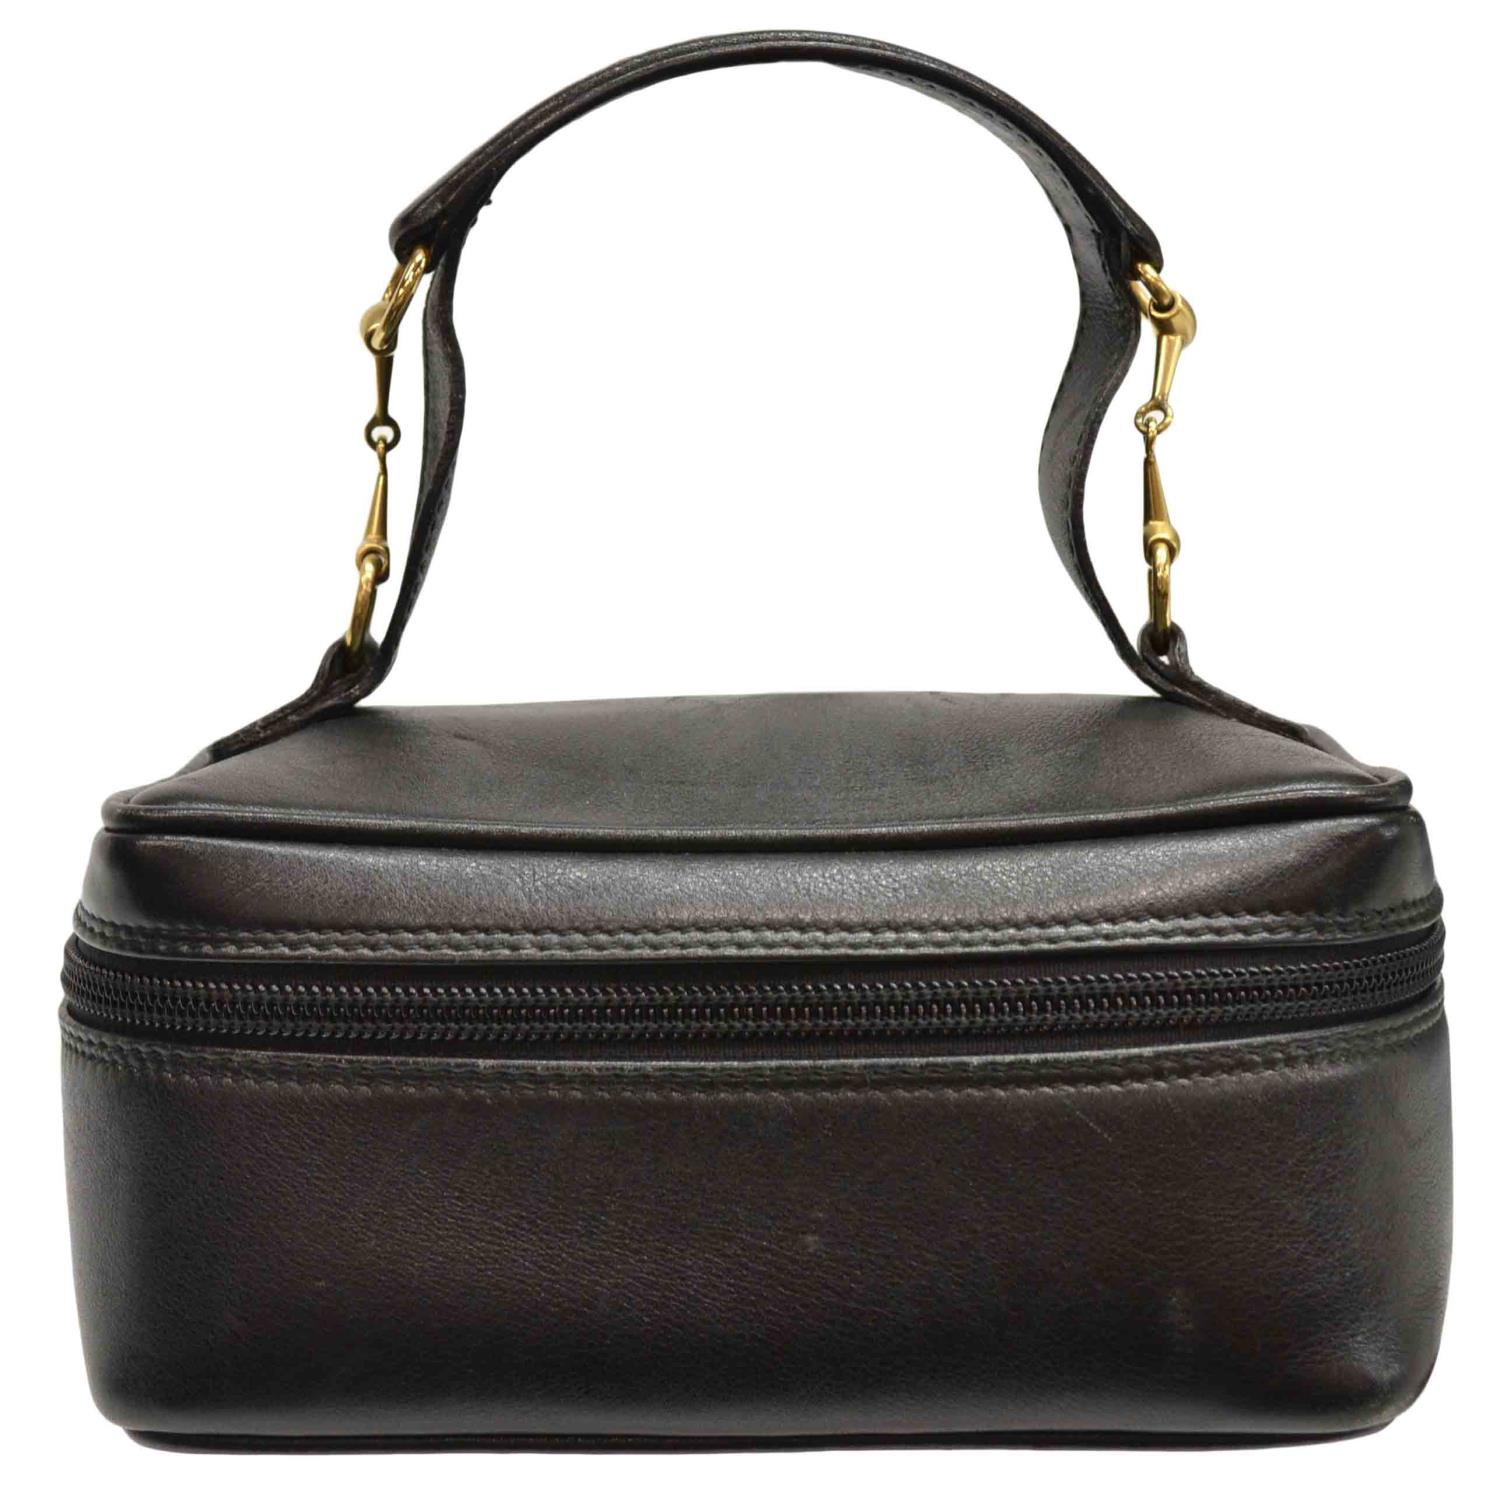 a152aa061fcee7 ... 419775 Black Leather Micro GG Guccissima Large Toiletry Dopp GUCCI  BLACK LEATHER & SUEDE COSMETIC BAG - Italian Design, Couture, & Estates -